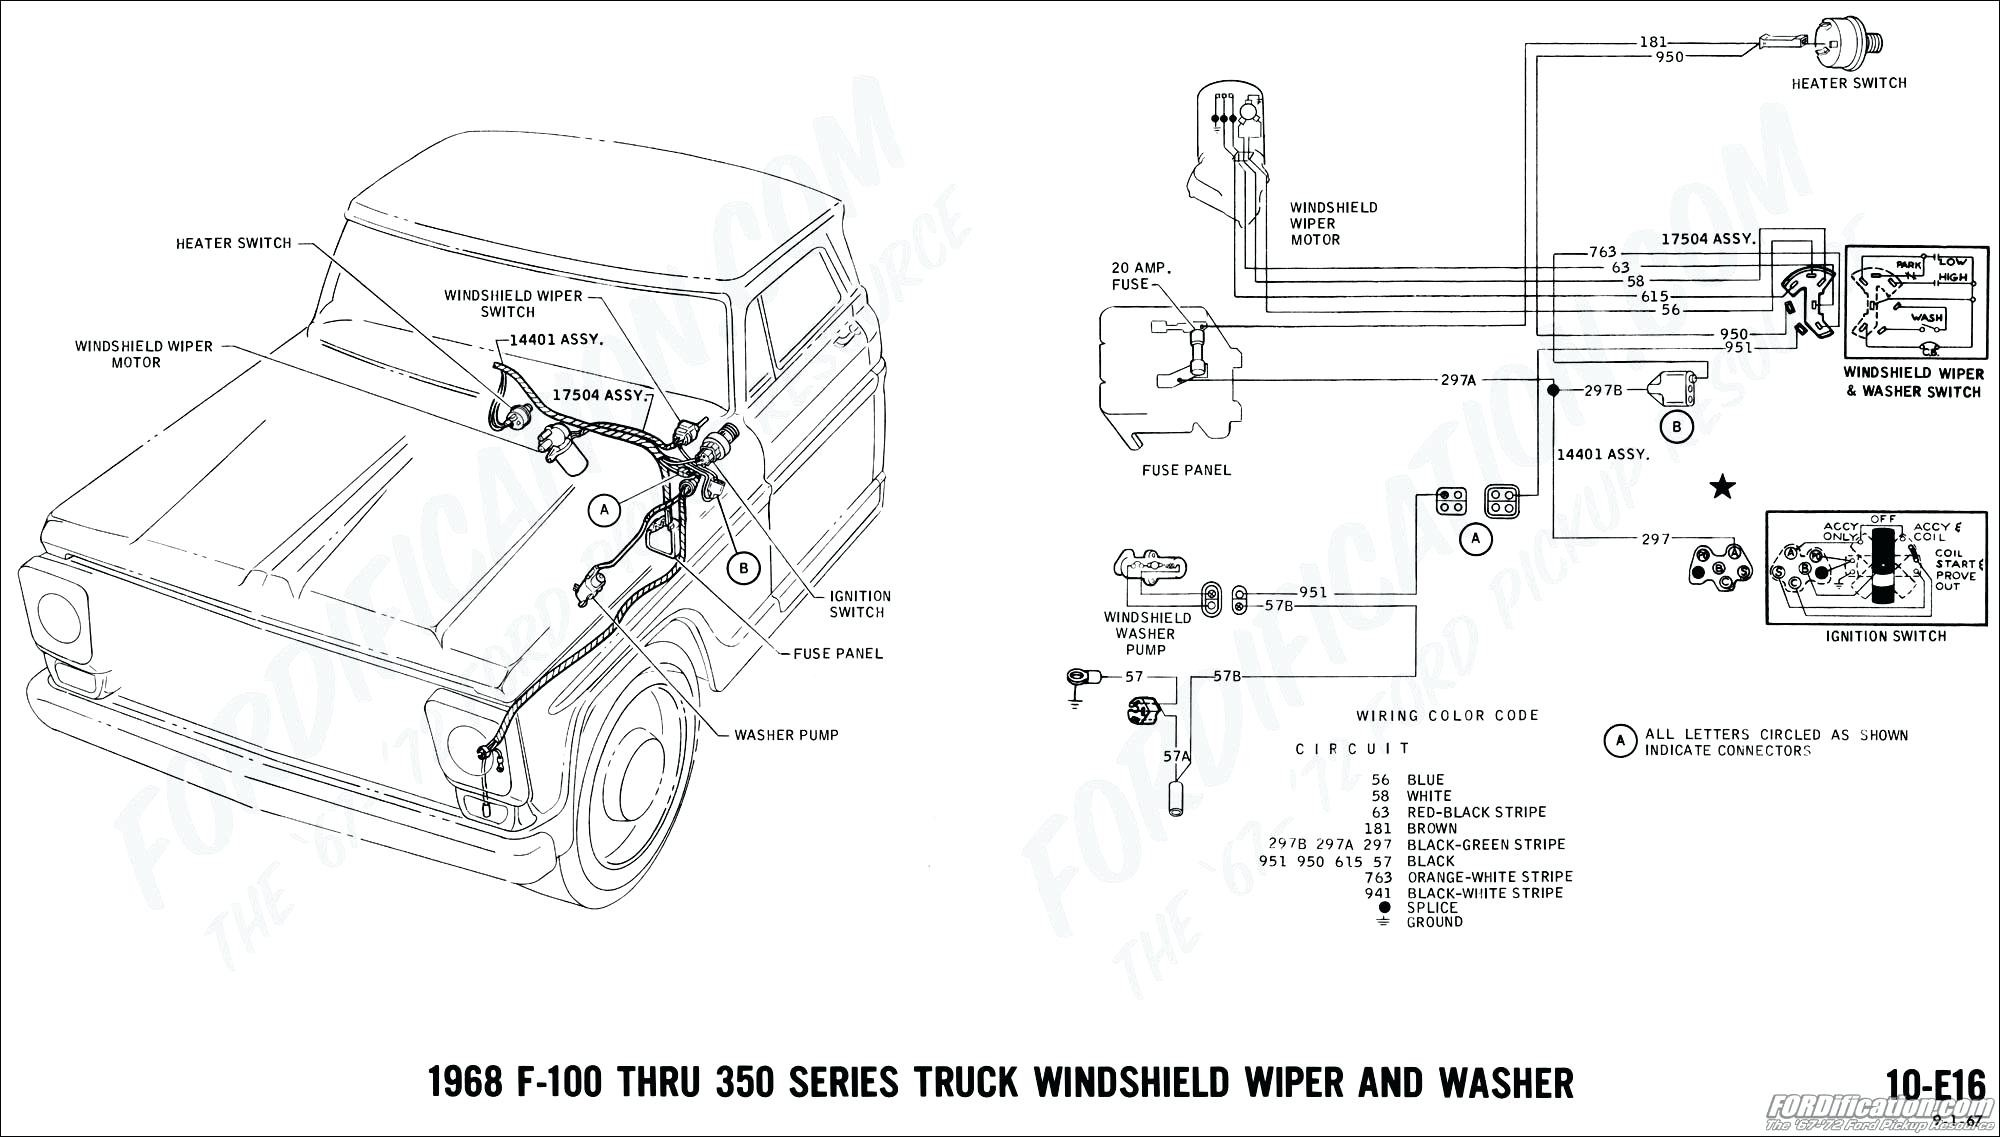 1992 toyota truck wiring diagram rj11 to rj45 1986 22r fuse box library